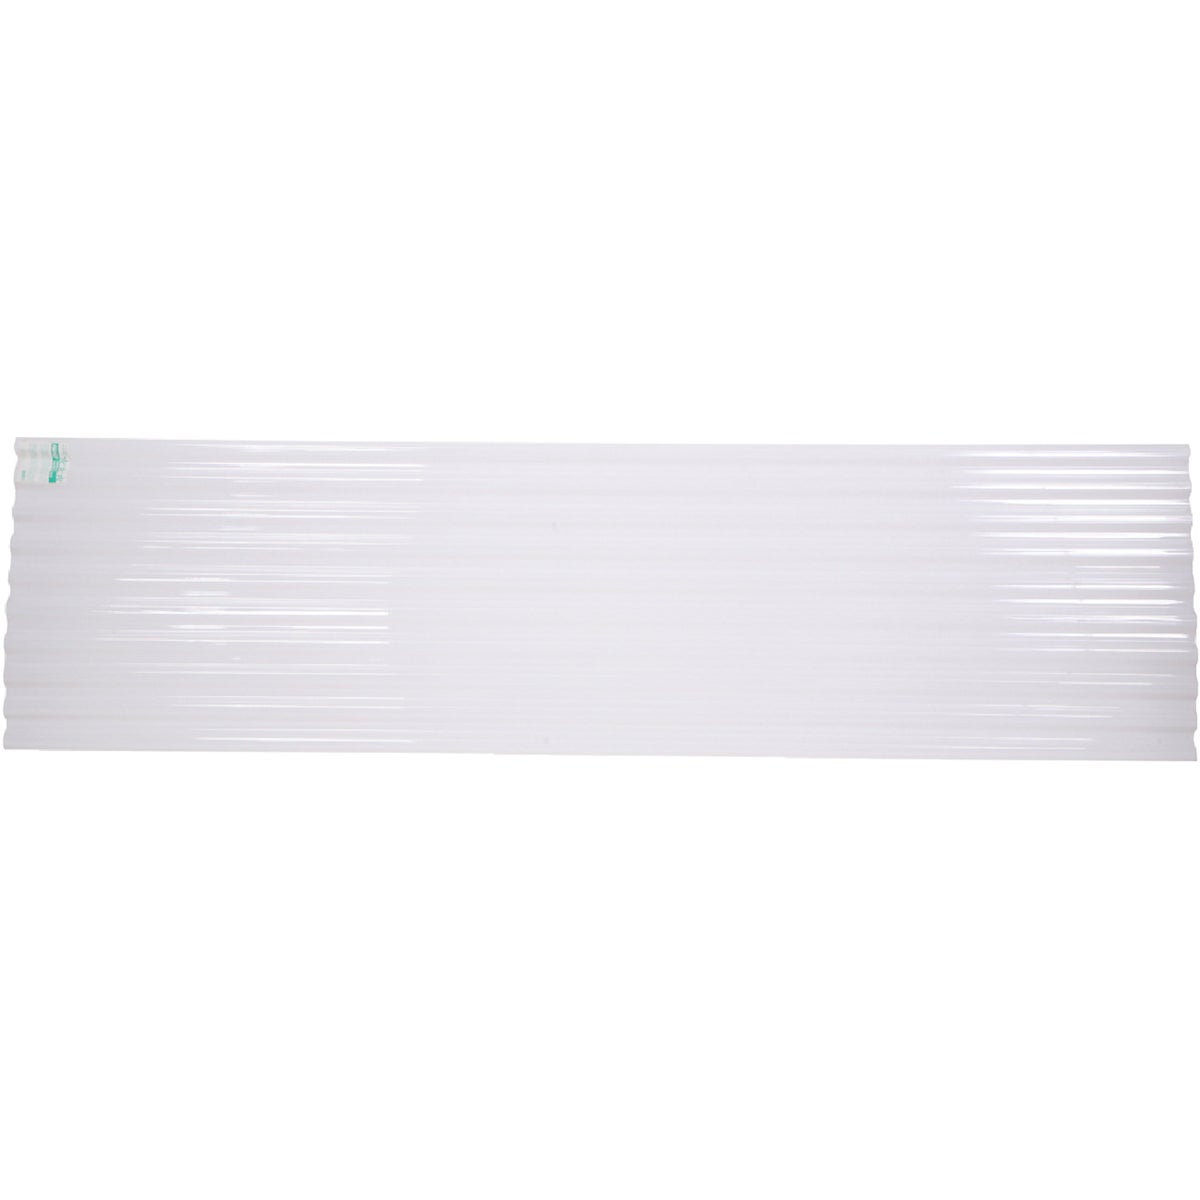 8' WHT CORRUGATED PANEL